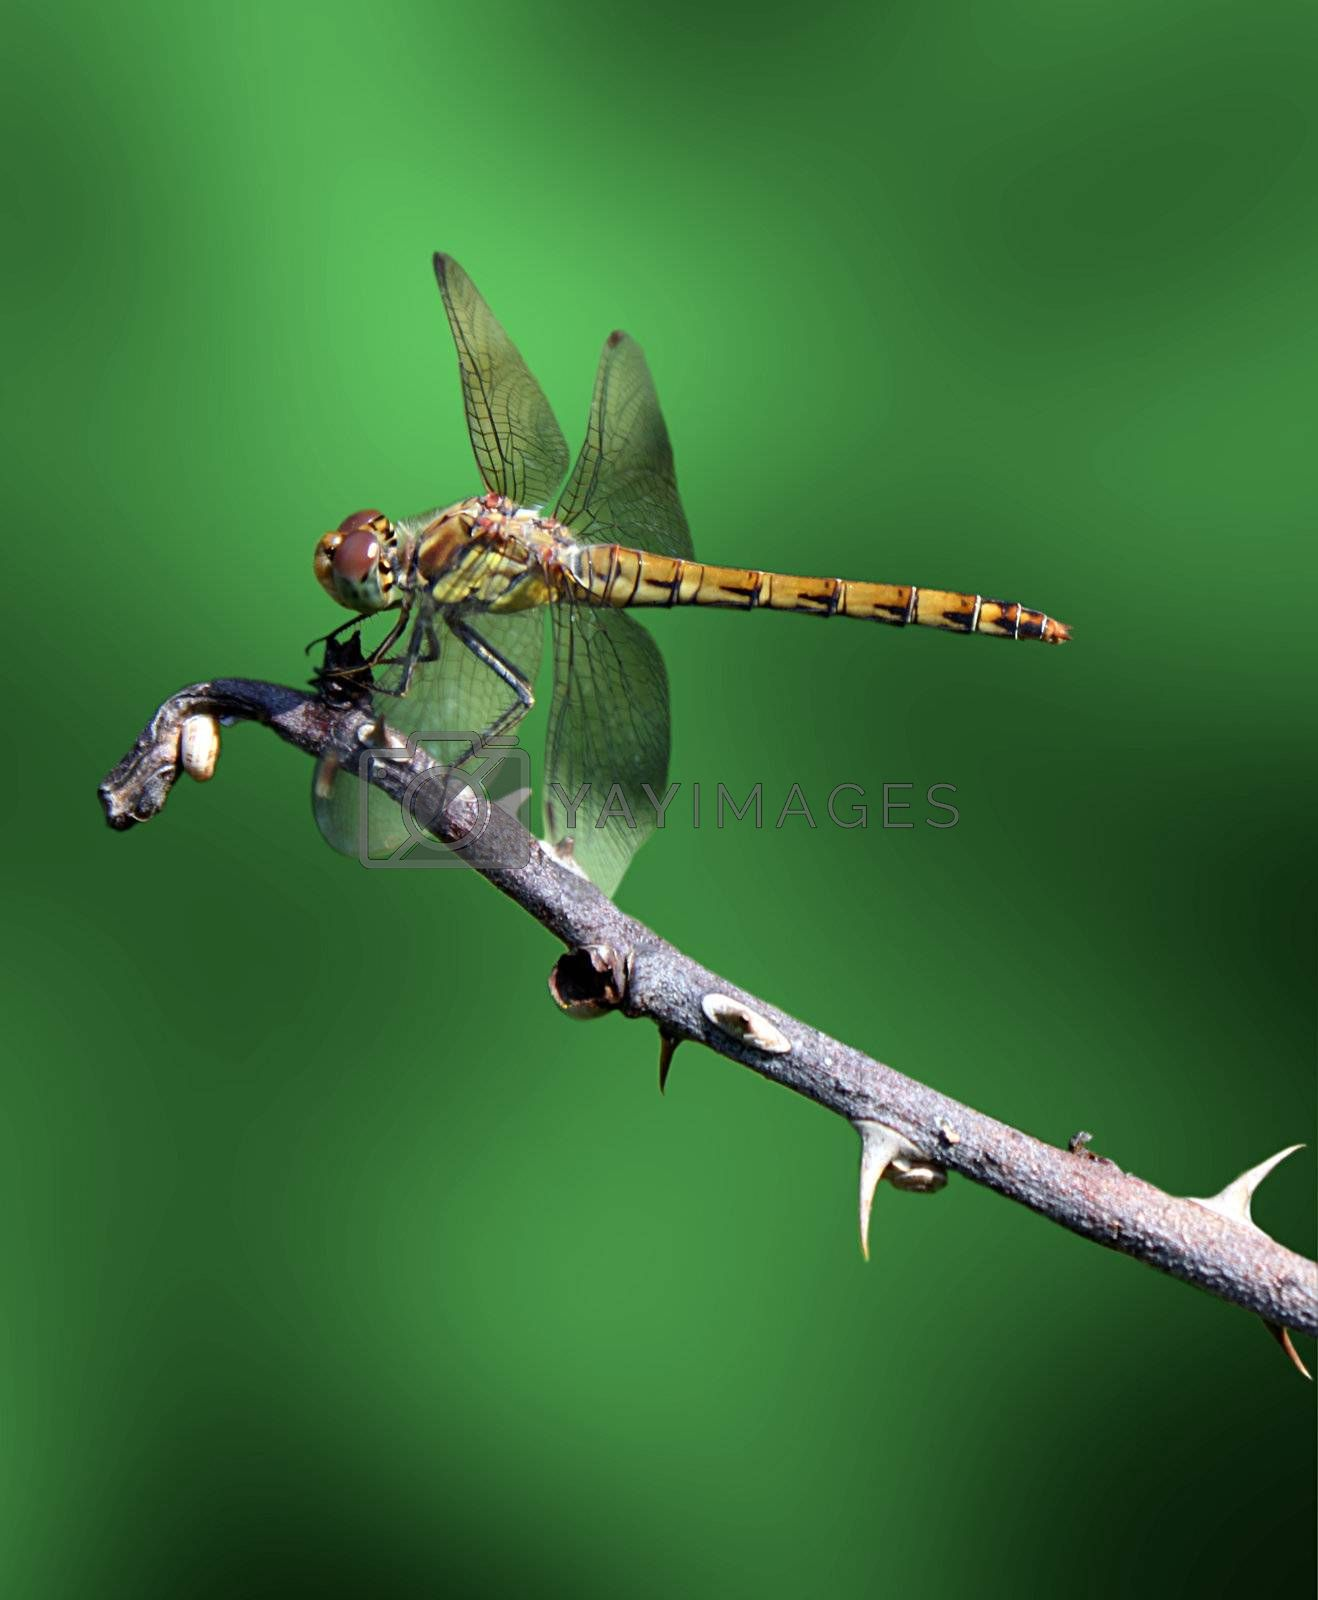 dragonfly on branch over green background